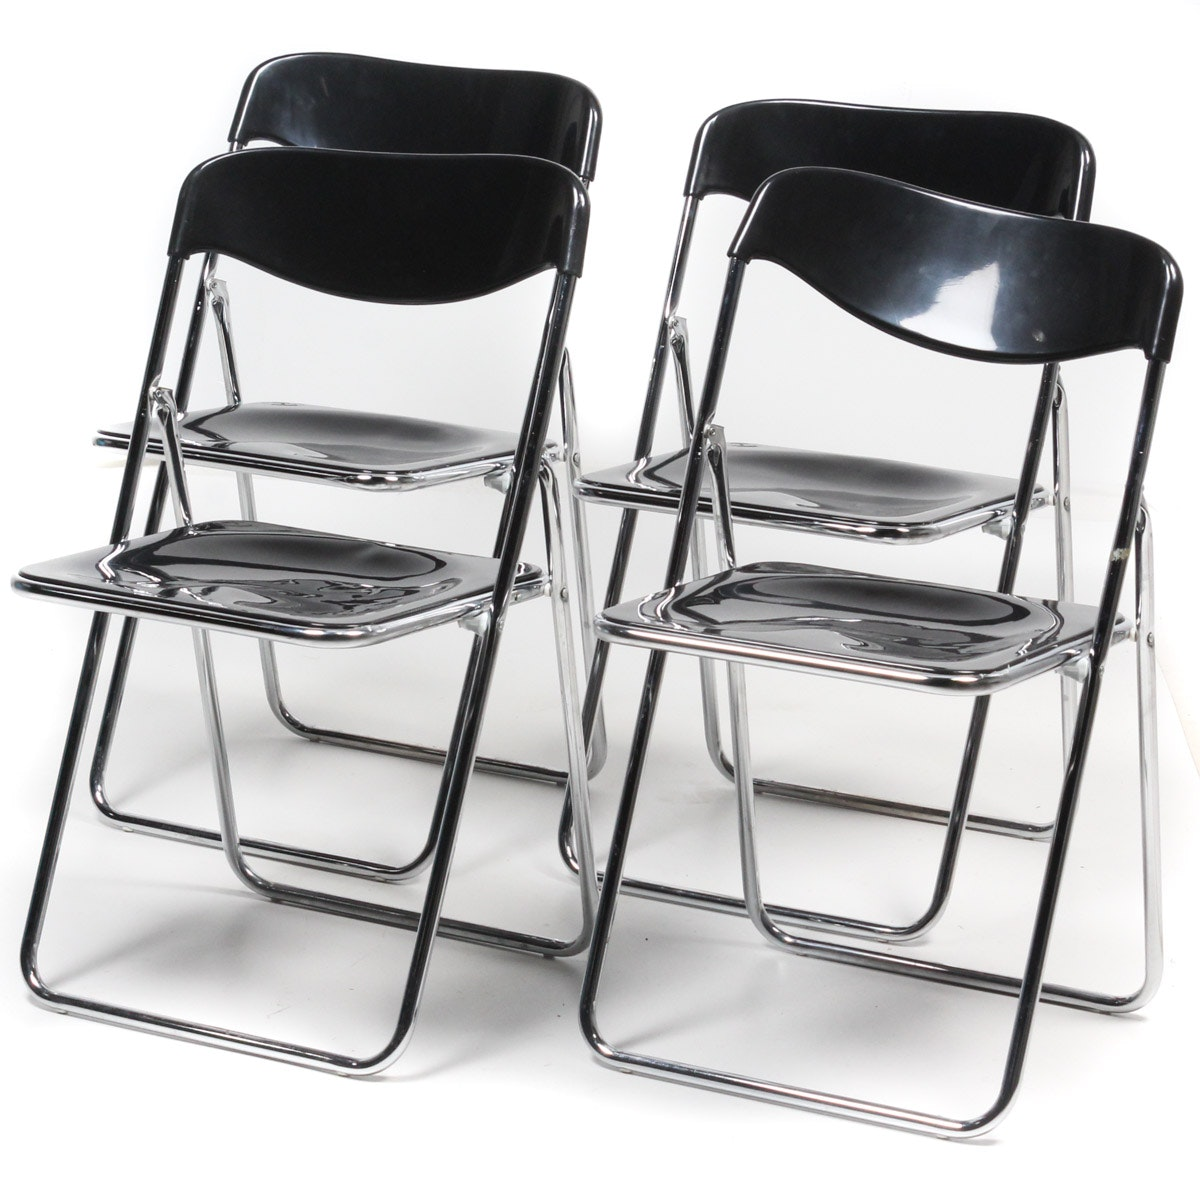 Set of Contemporary Folding Chairs